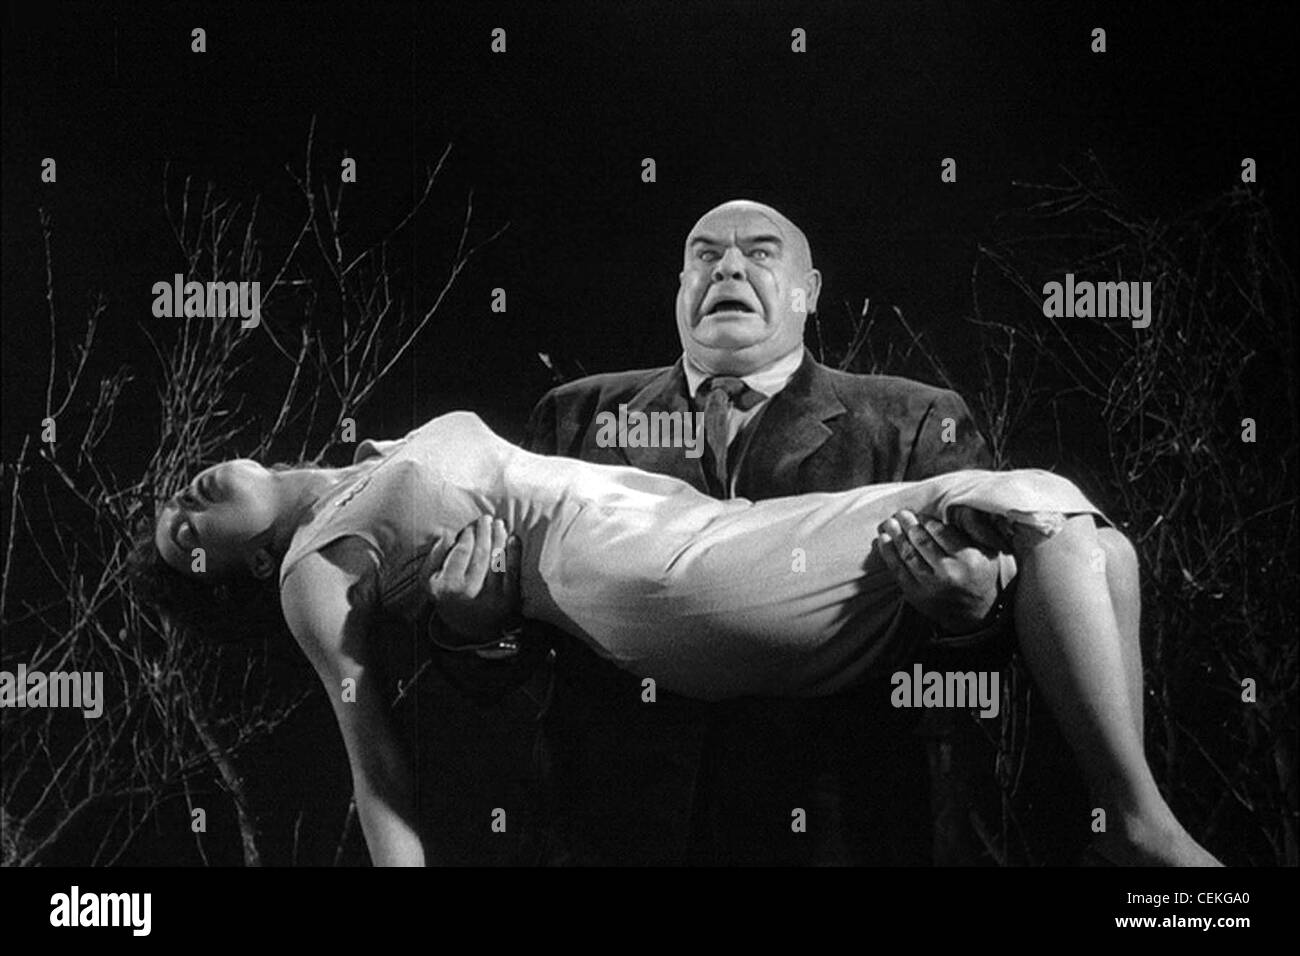 PLAN 9 FROM OUTER SPACE (1959) MONA MCKINNON TOR JOHNSON EDWARD D. WOOD JR. (DIR) 008 MOVIESTORE COLLECTION LTD - Stock Image